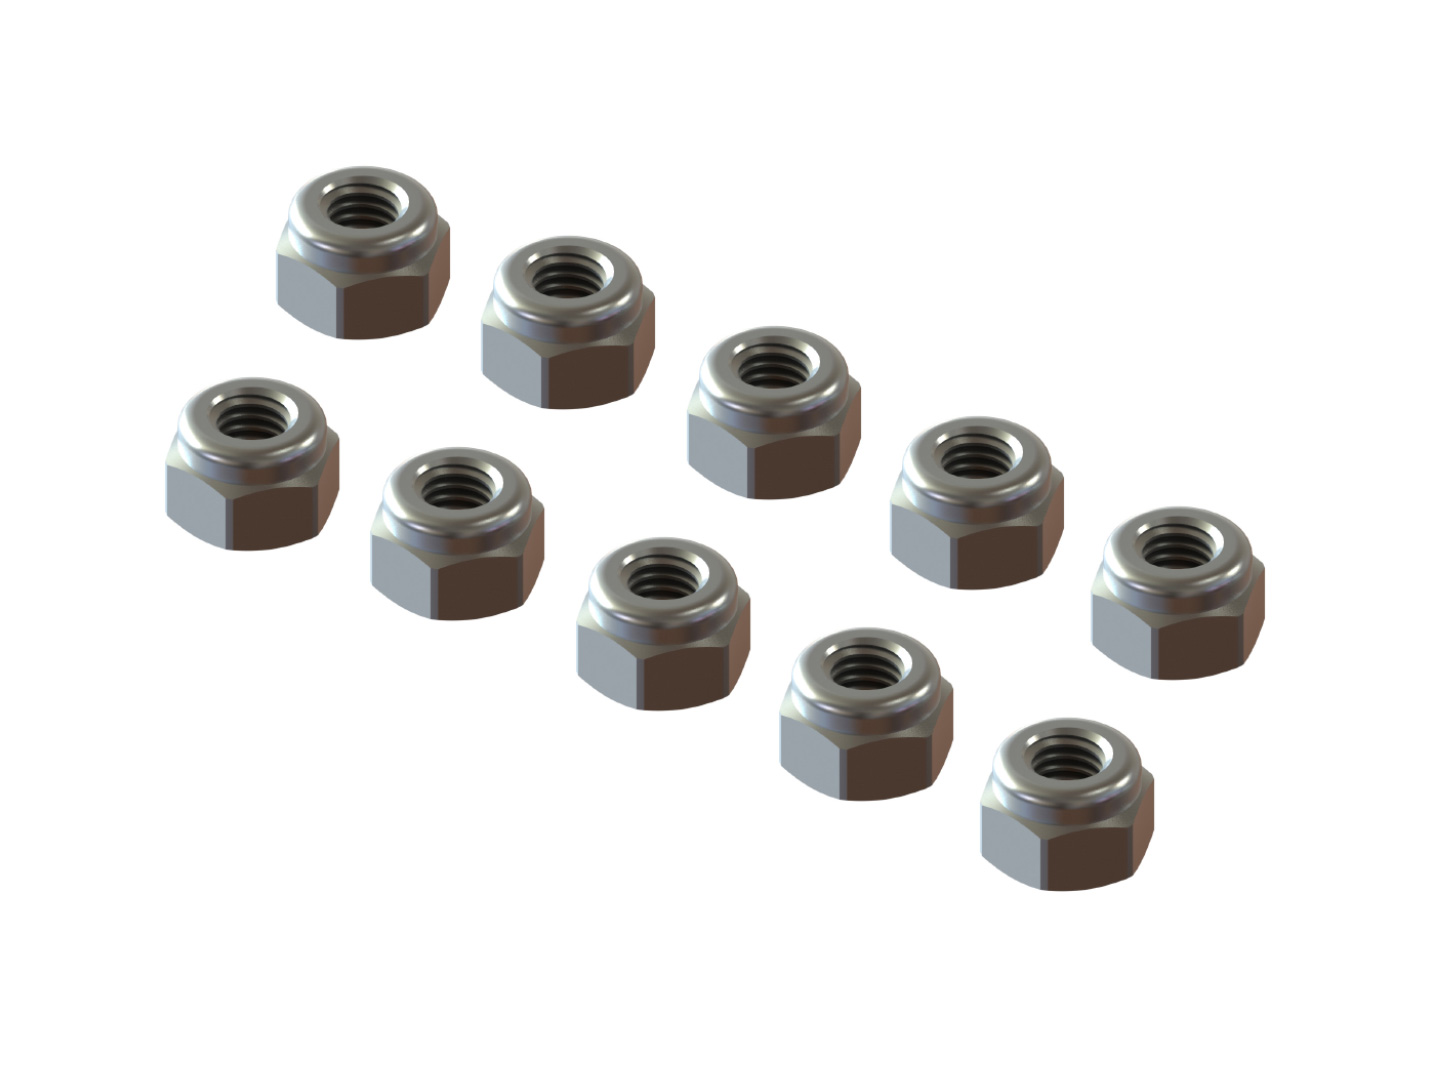 M2.5-SLN-10 SELF LOCK NUT M2.5